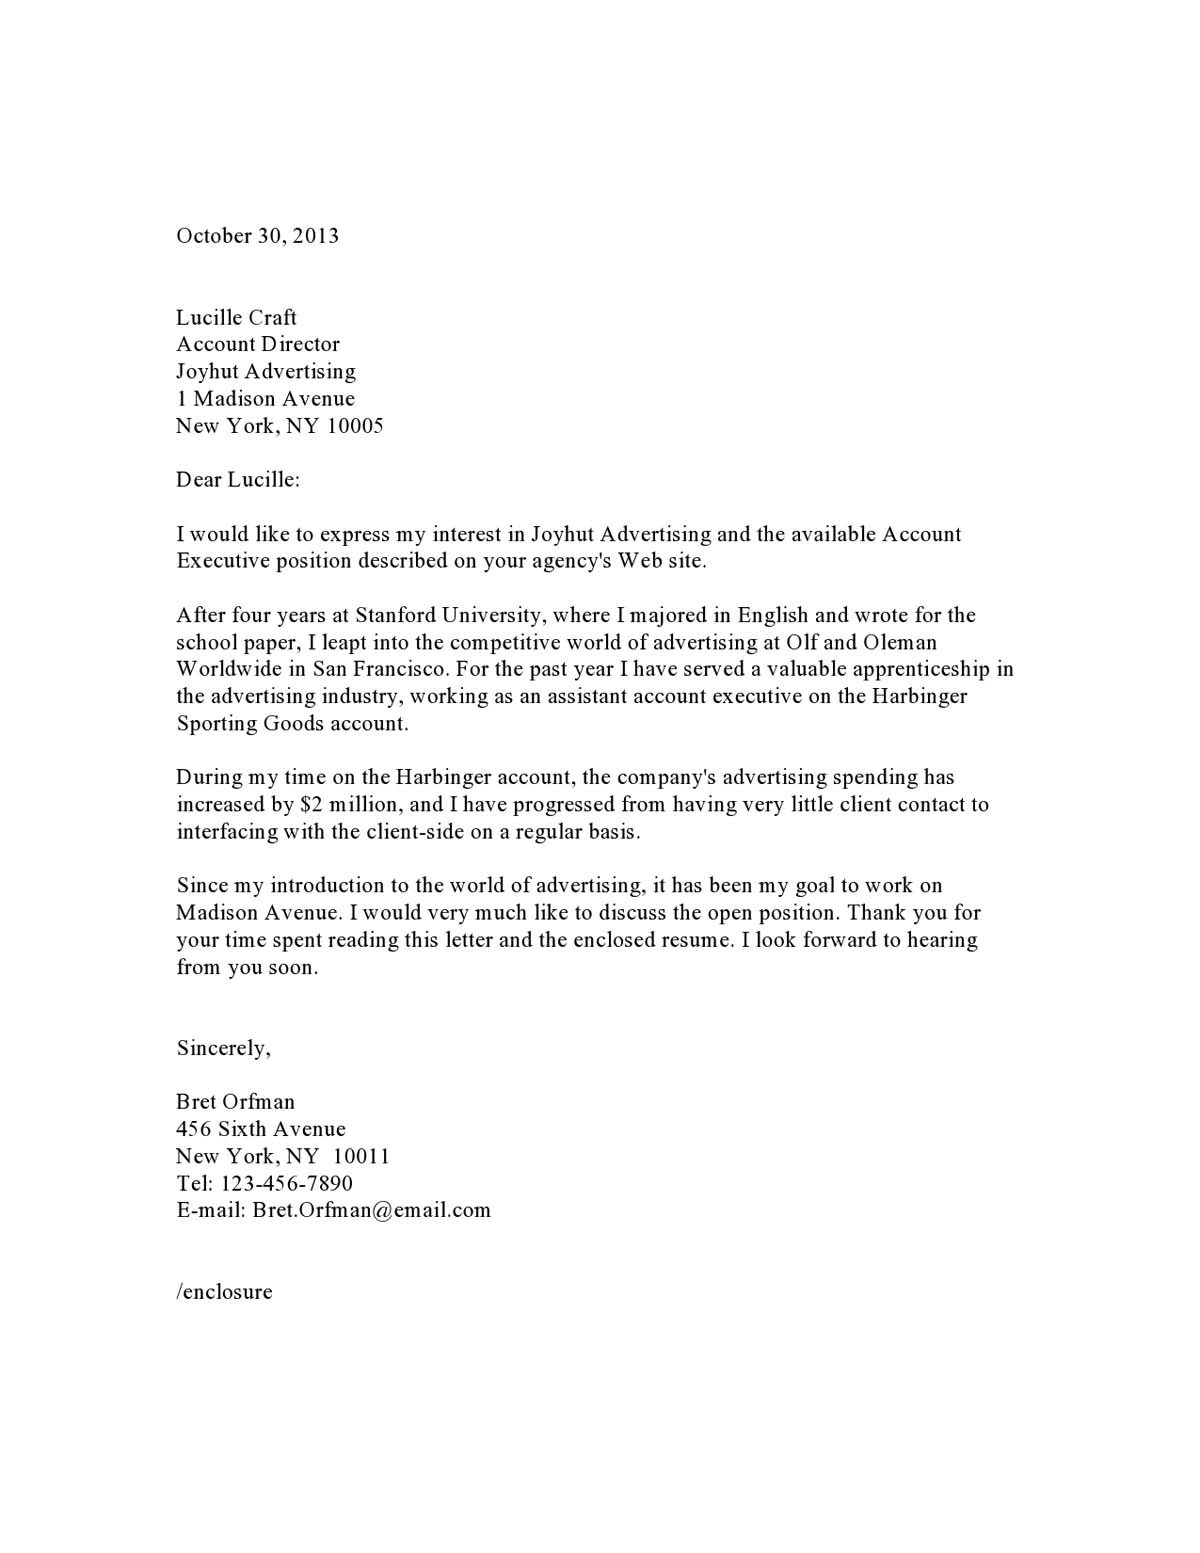 Cover Letter Resume Sample 10 43 Resume Cover Letter Examples Pdf